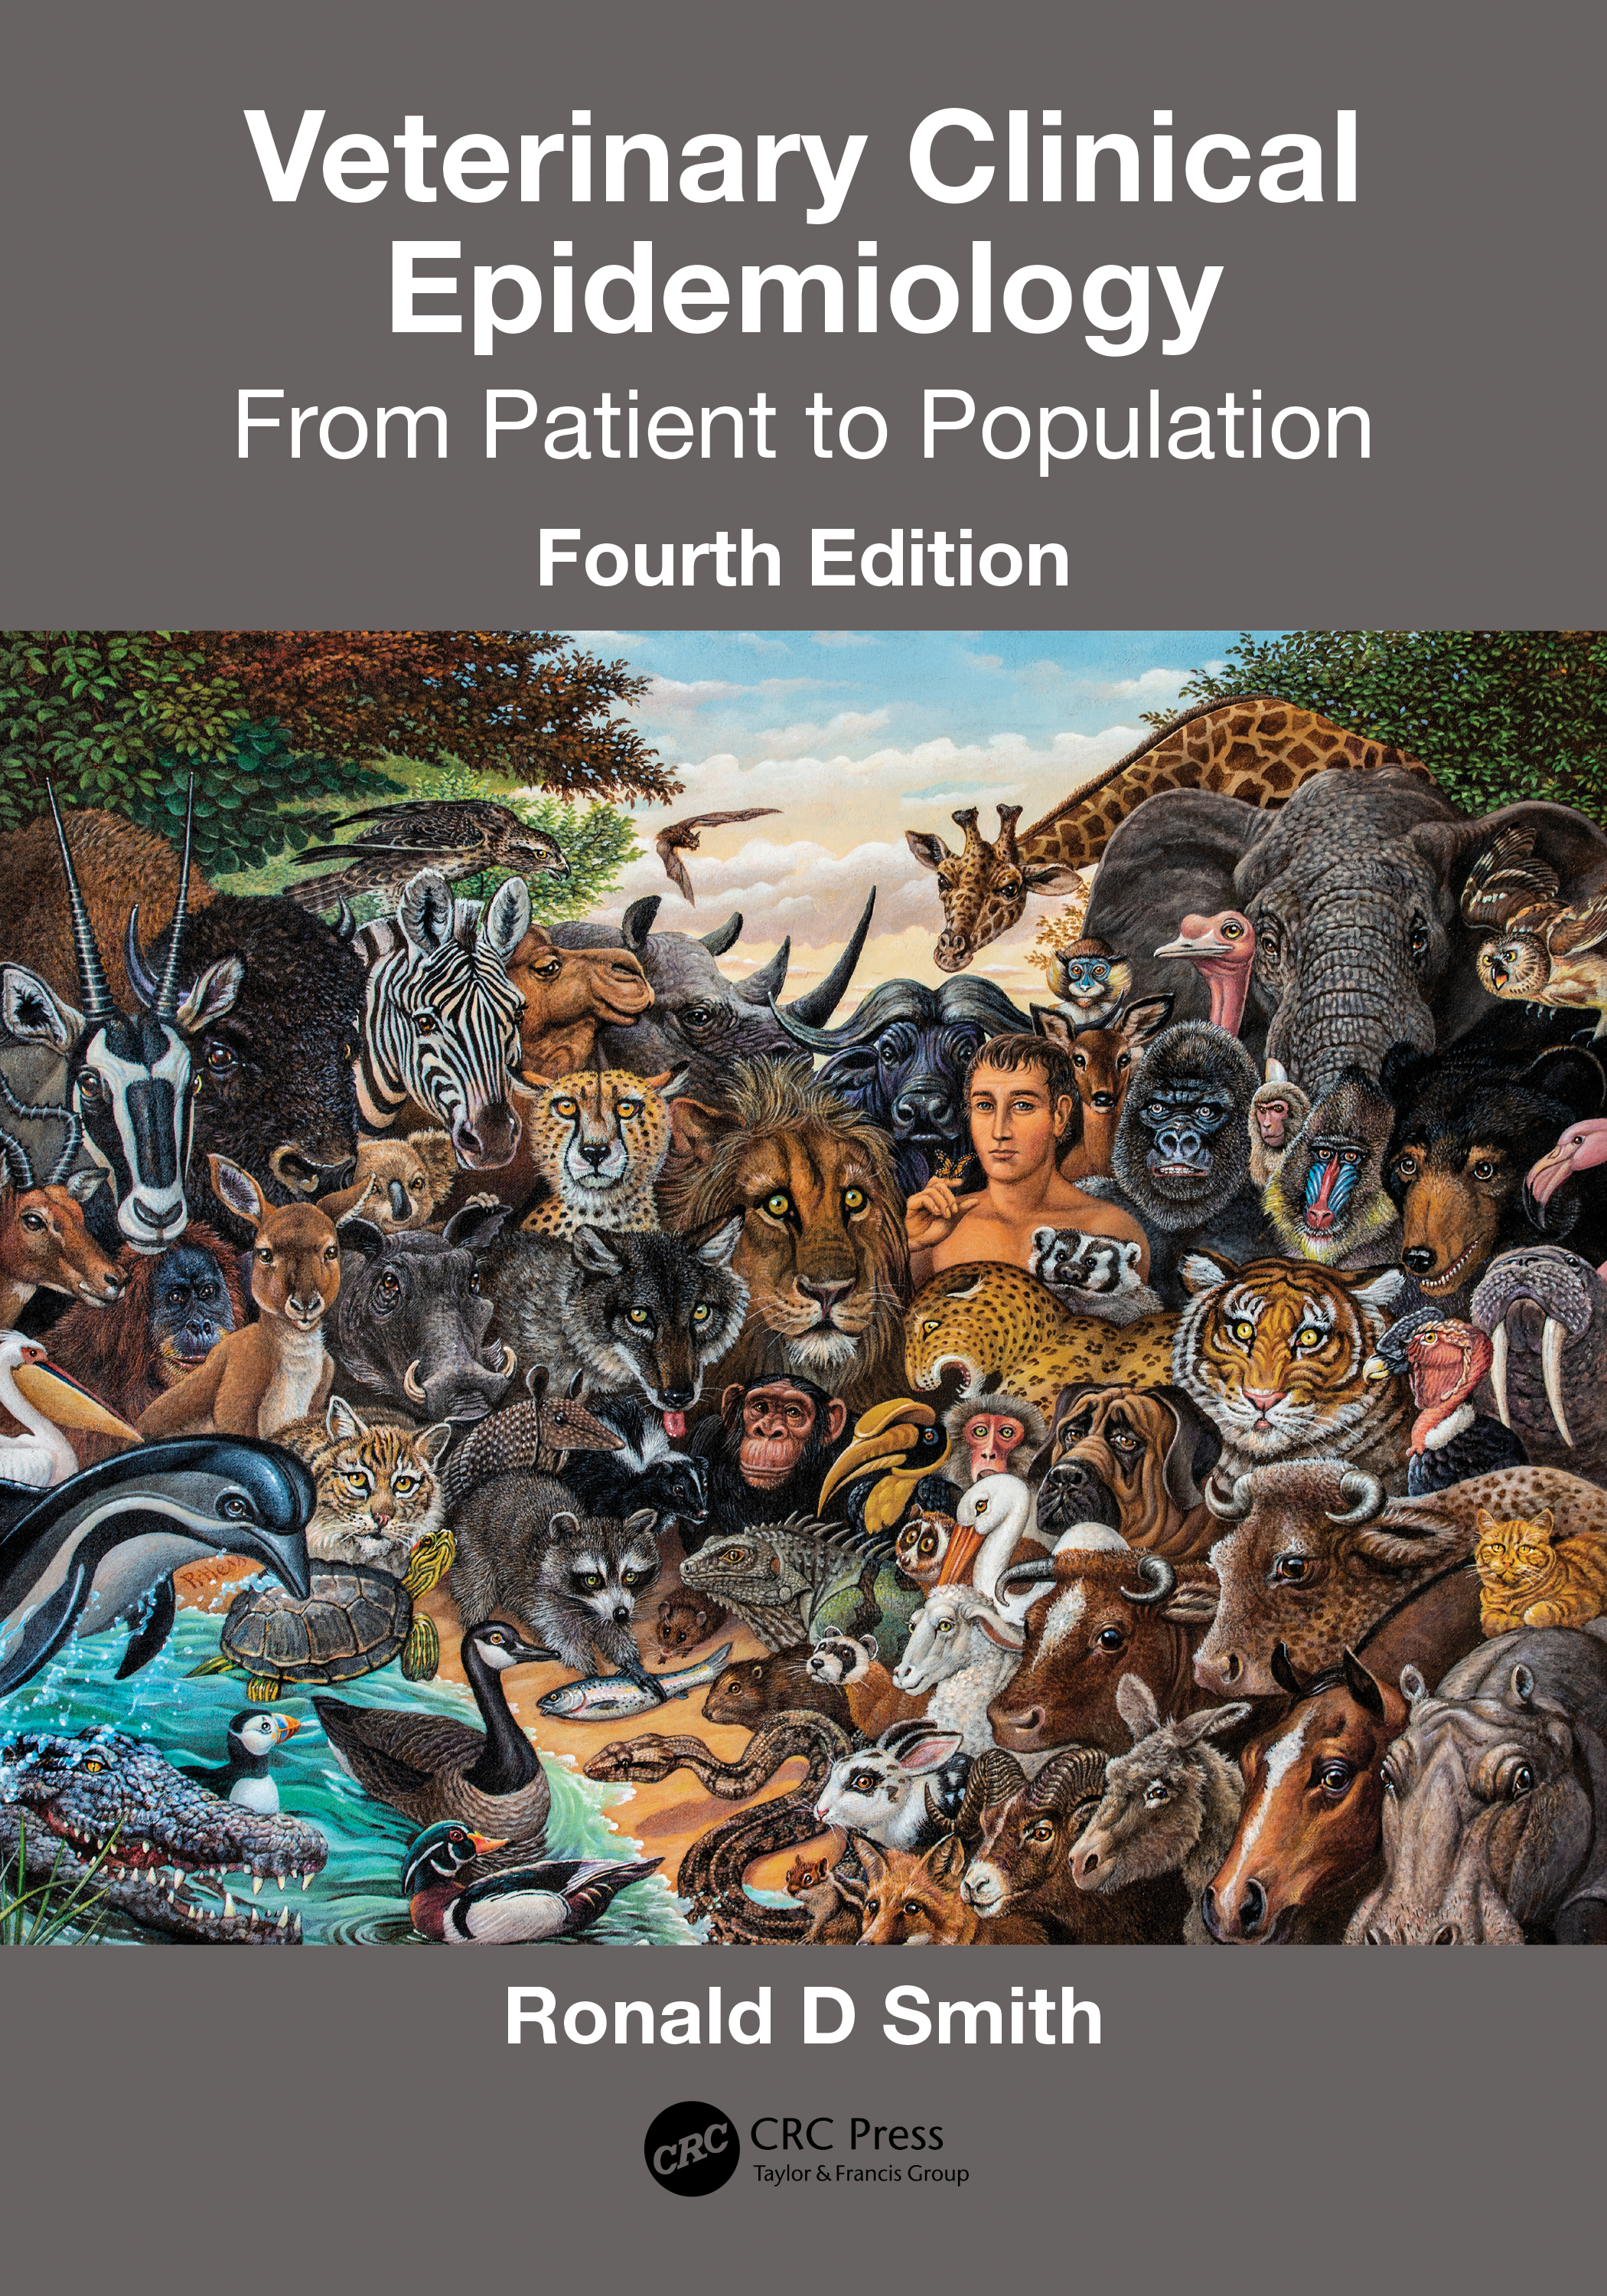 Veterinary Clinical Epidemiology: From Patient to Population book cover